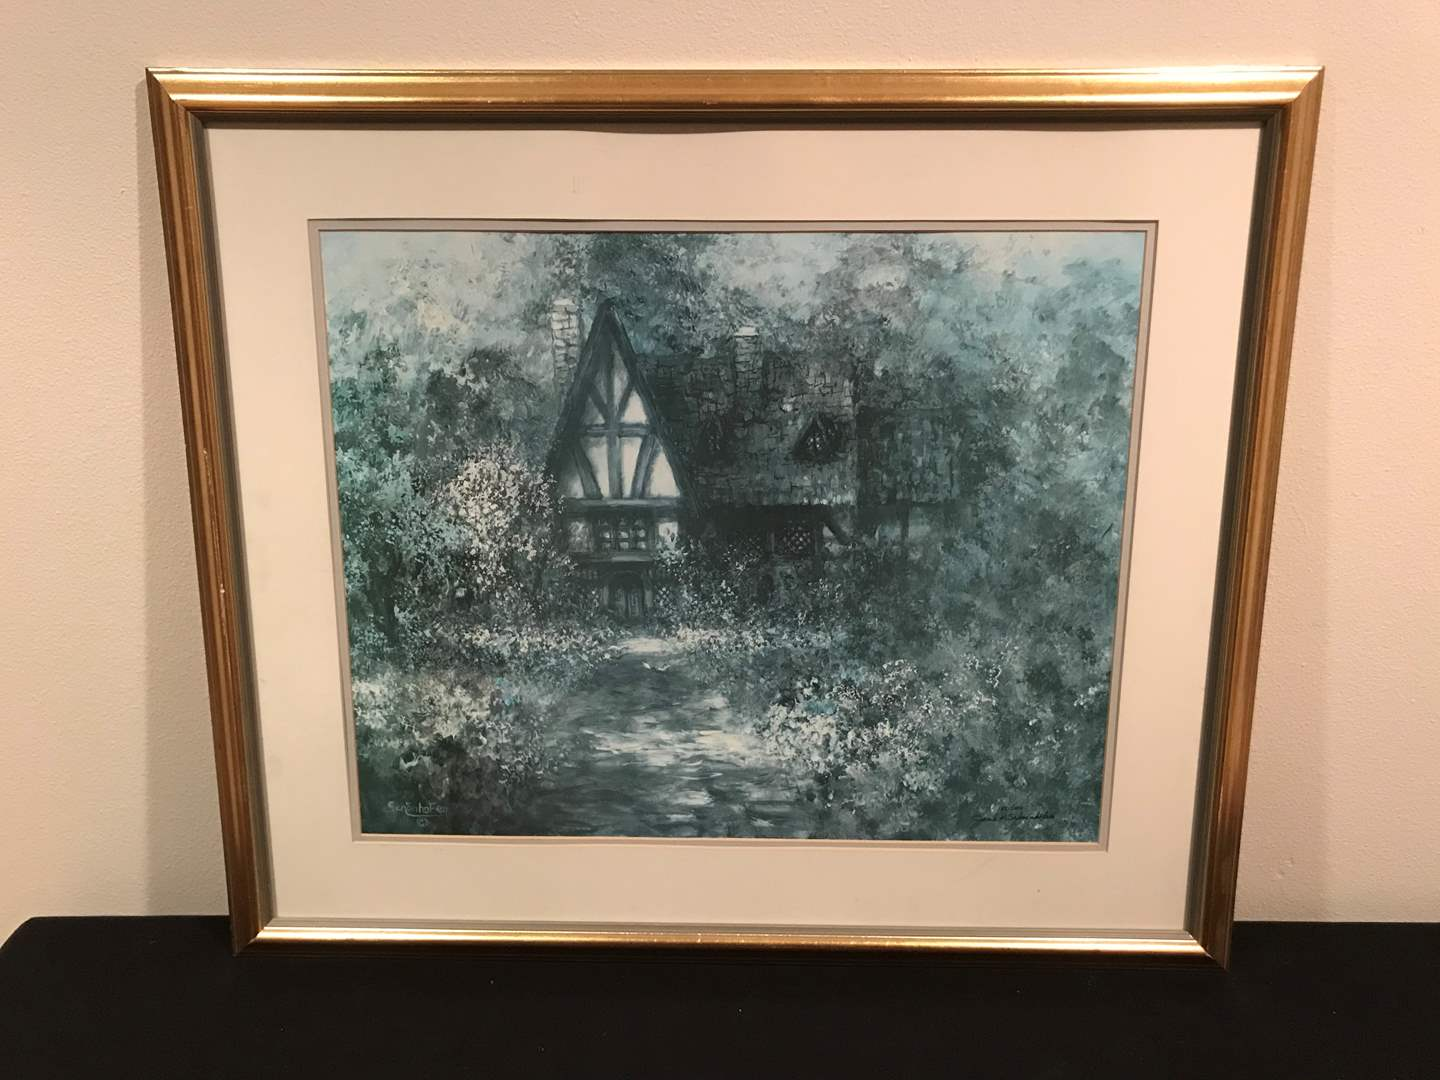 Lot # 56 - Framed and Numbered (188/1000) Print from June K. Schoenhofen (main image)